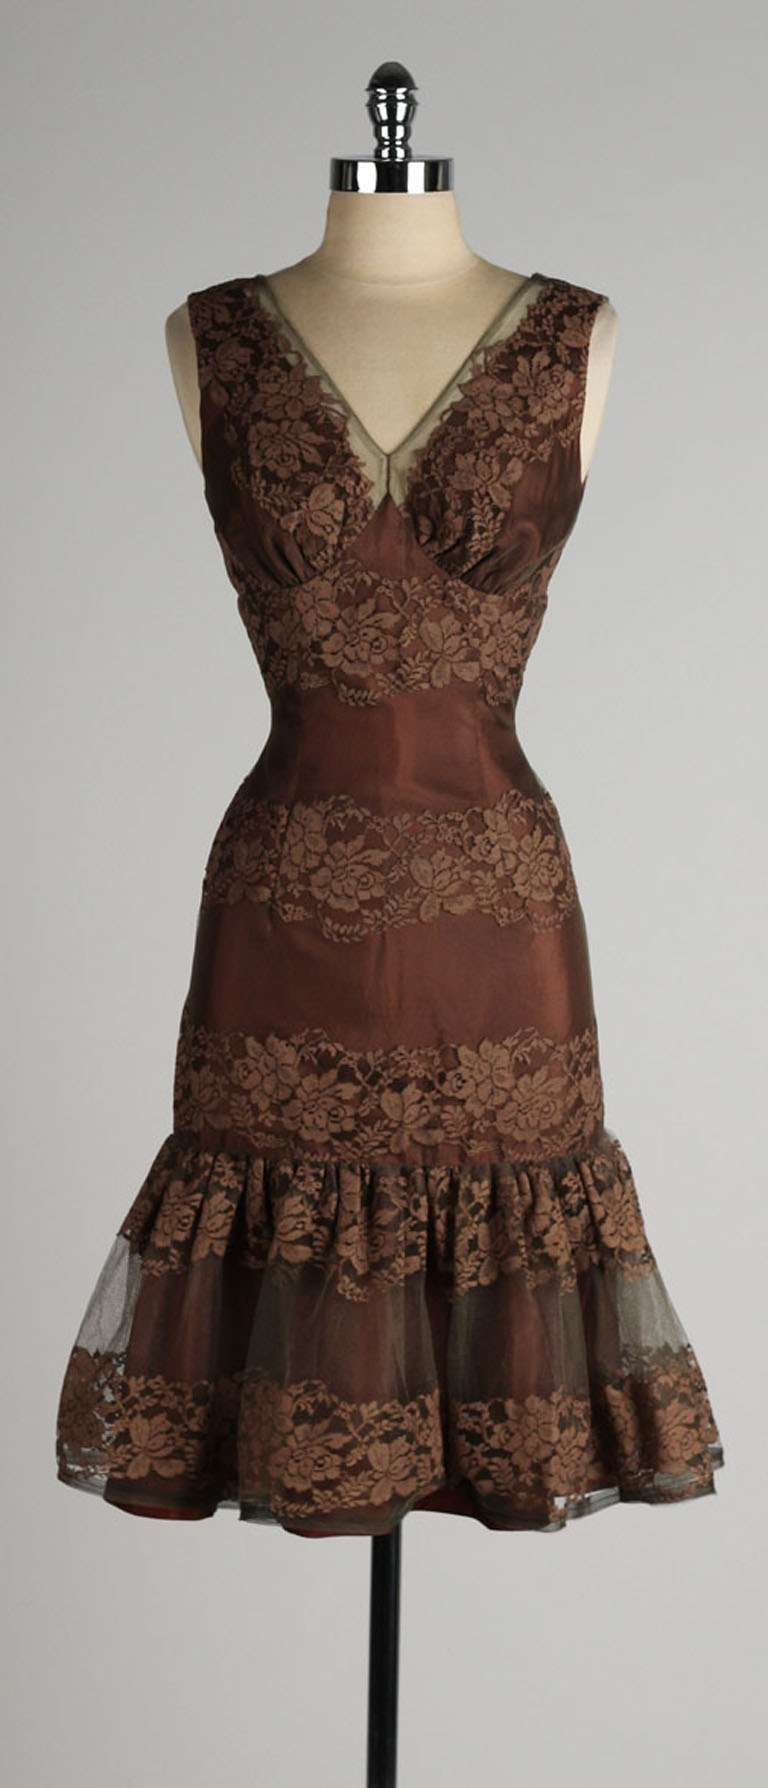 Chocolate Brown Satin Cocktail Dress With Lace And Chiffon